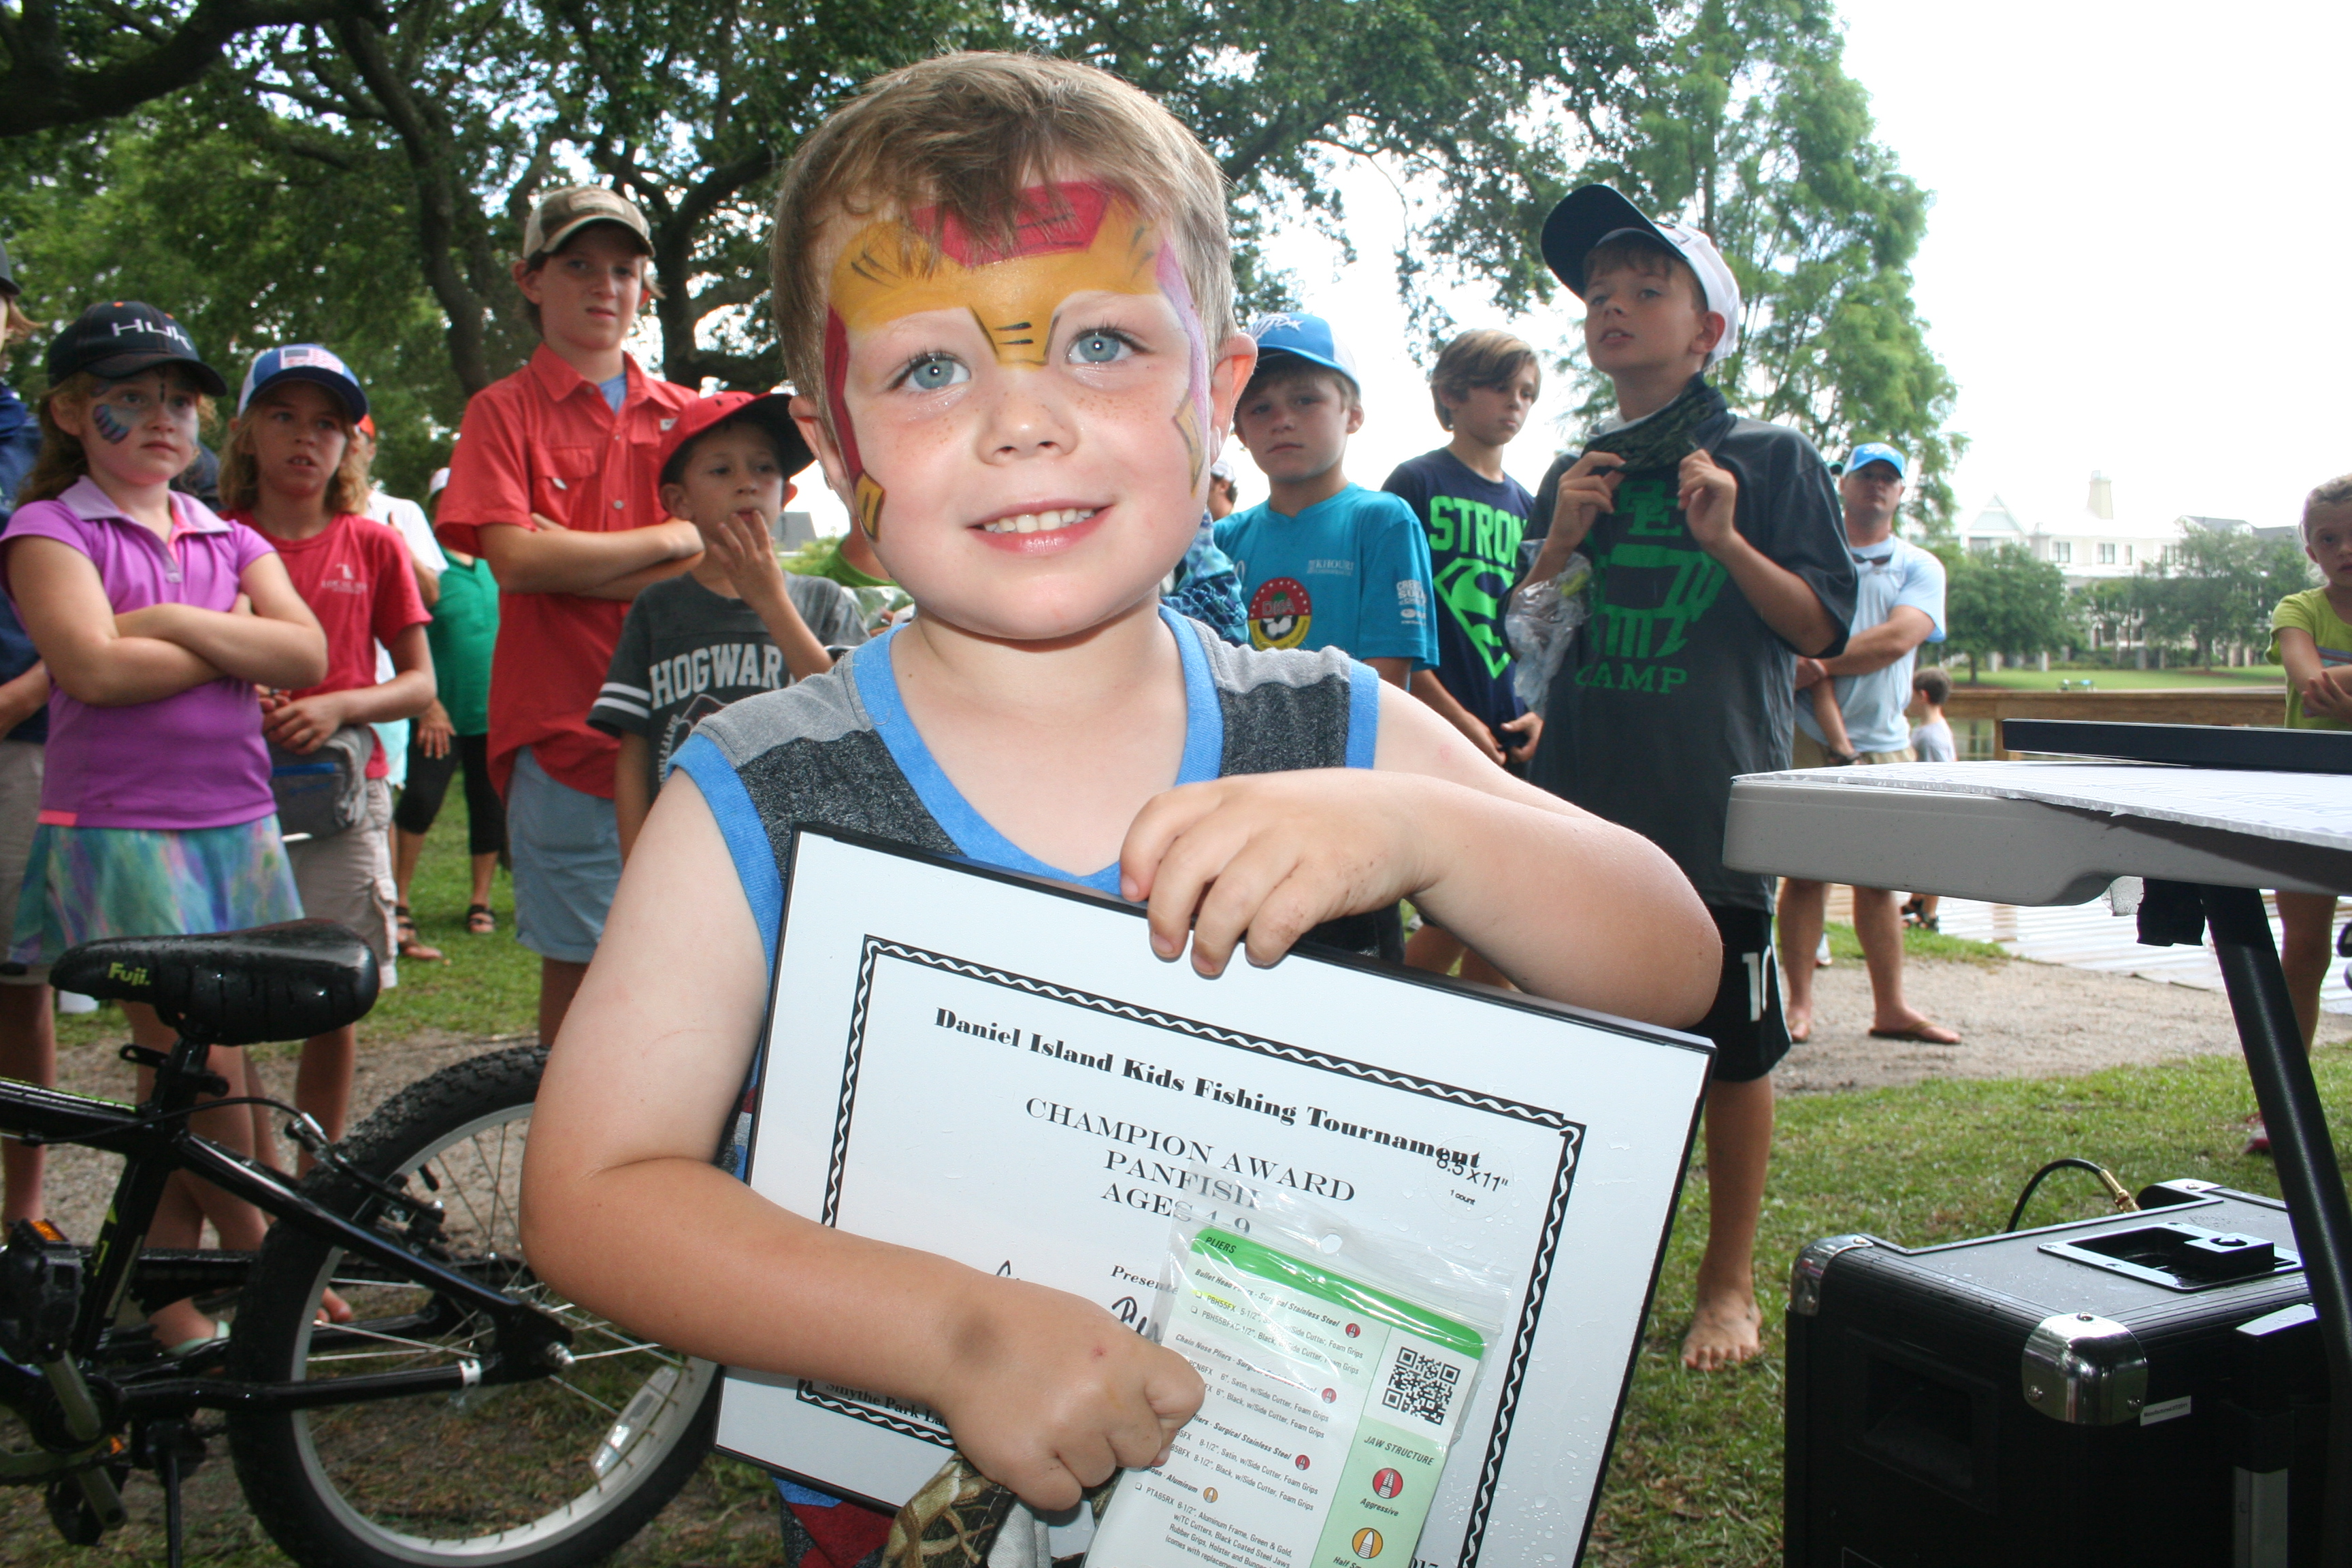 The Champion Award in the Panfish category for 4-9 year olds went to Camp Ferguson for his 8 inch fish. The first runner up was Jason Chalupsky and the second runner up was Josh Ray.